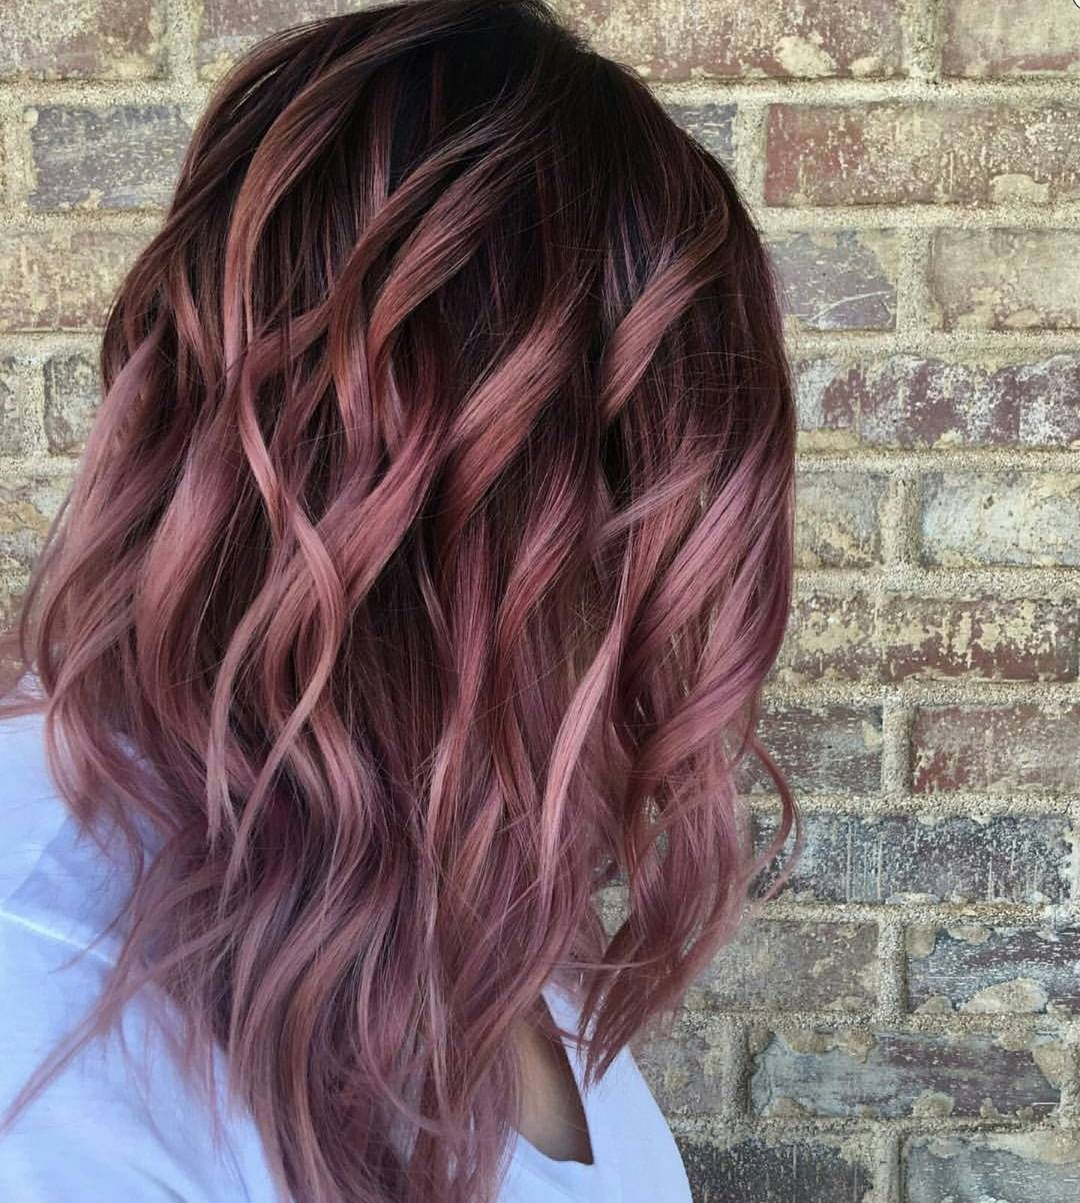 images Hair Color Trend – Pretty in Pastels